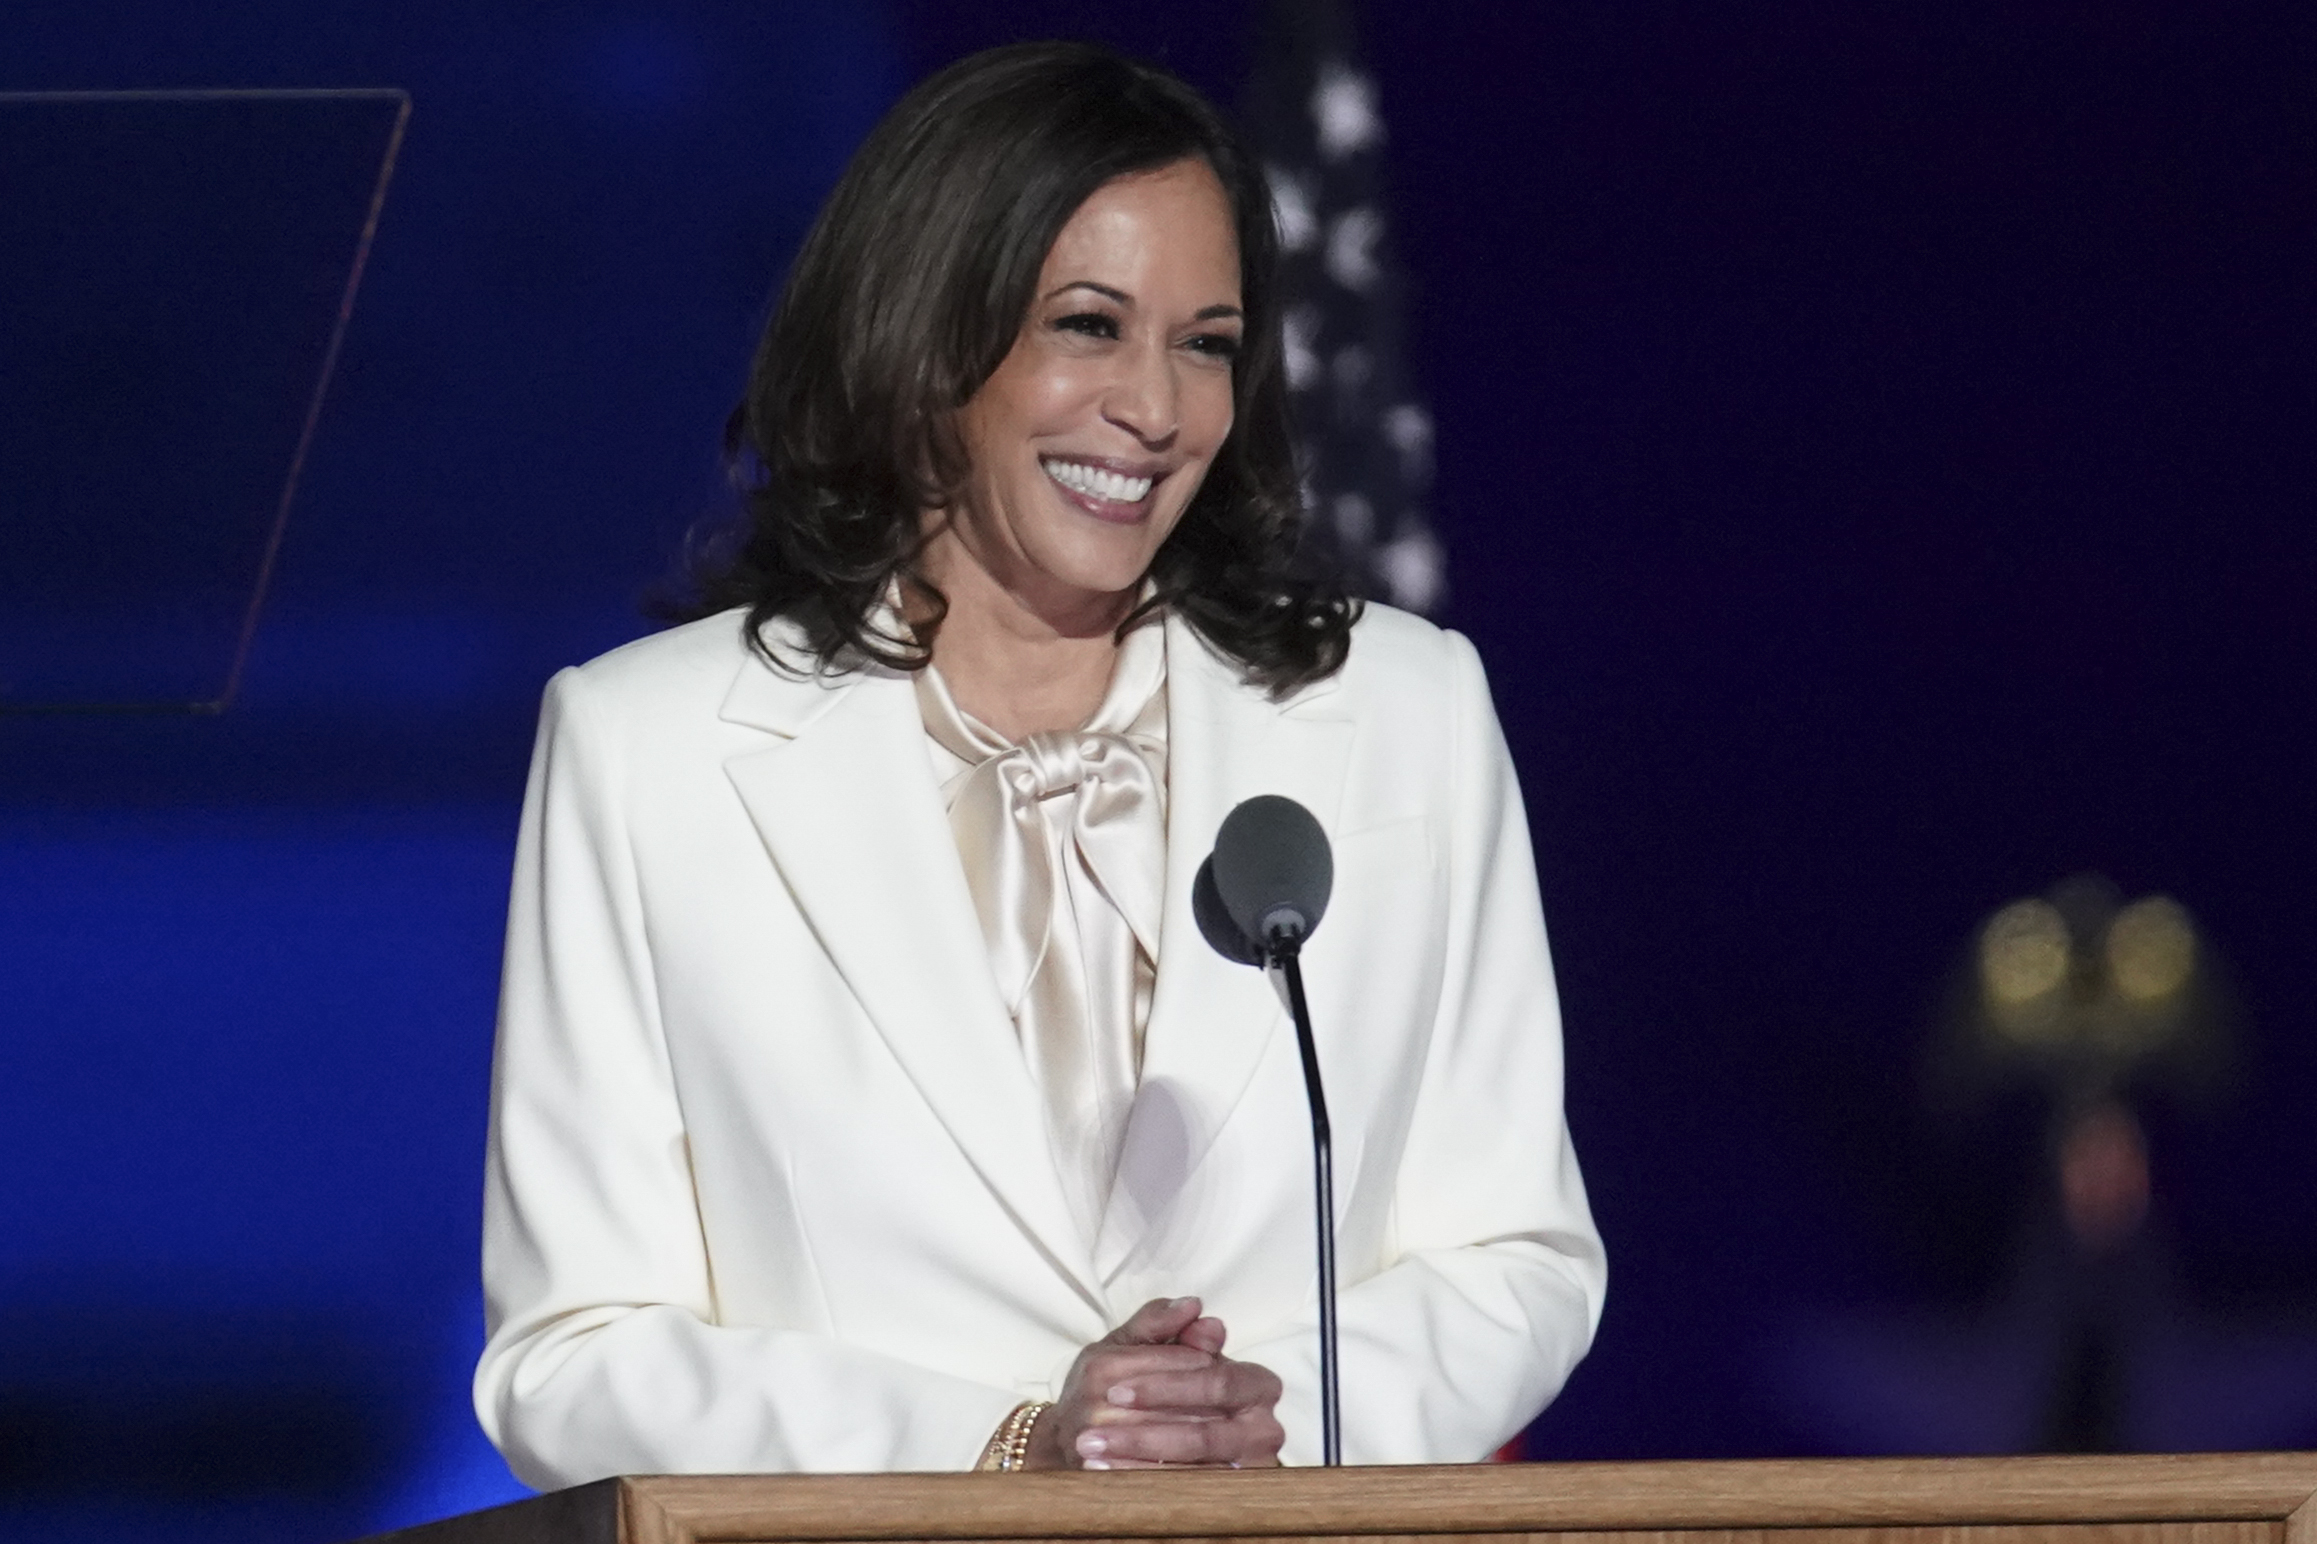 U.S. Vice President-elect Kamala Harris speaks during an election event in Wilmington, DE, Sat. Nov. 7, 2020. Joe Biden defeated Donald Trump to become the 46th U.S. president, unseating the incumbent with a pledge to unify and mend a nation reeling from a worsening pandemic, faltering economy and deep political divisions.